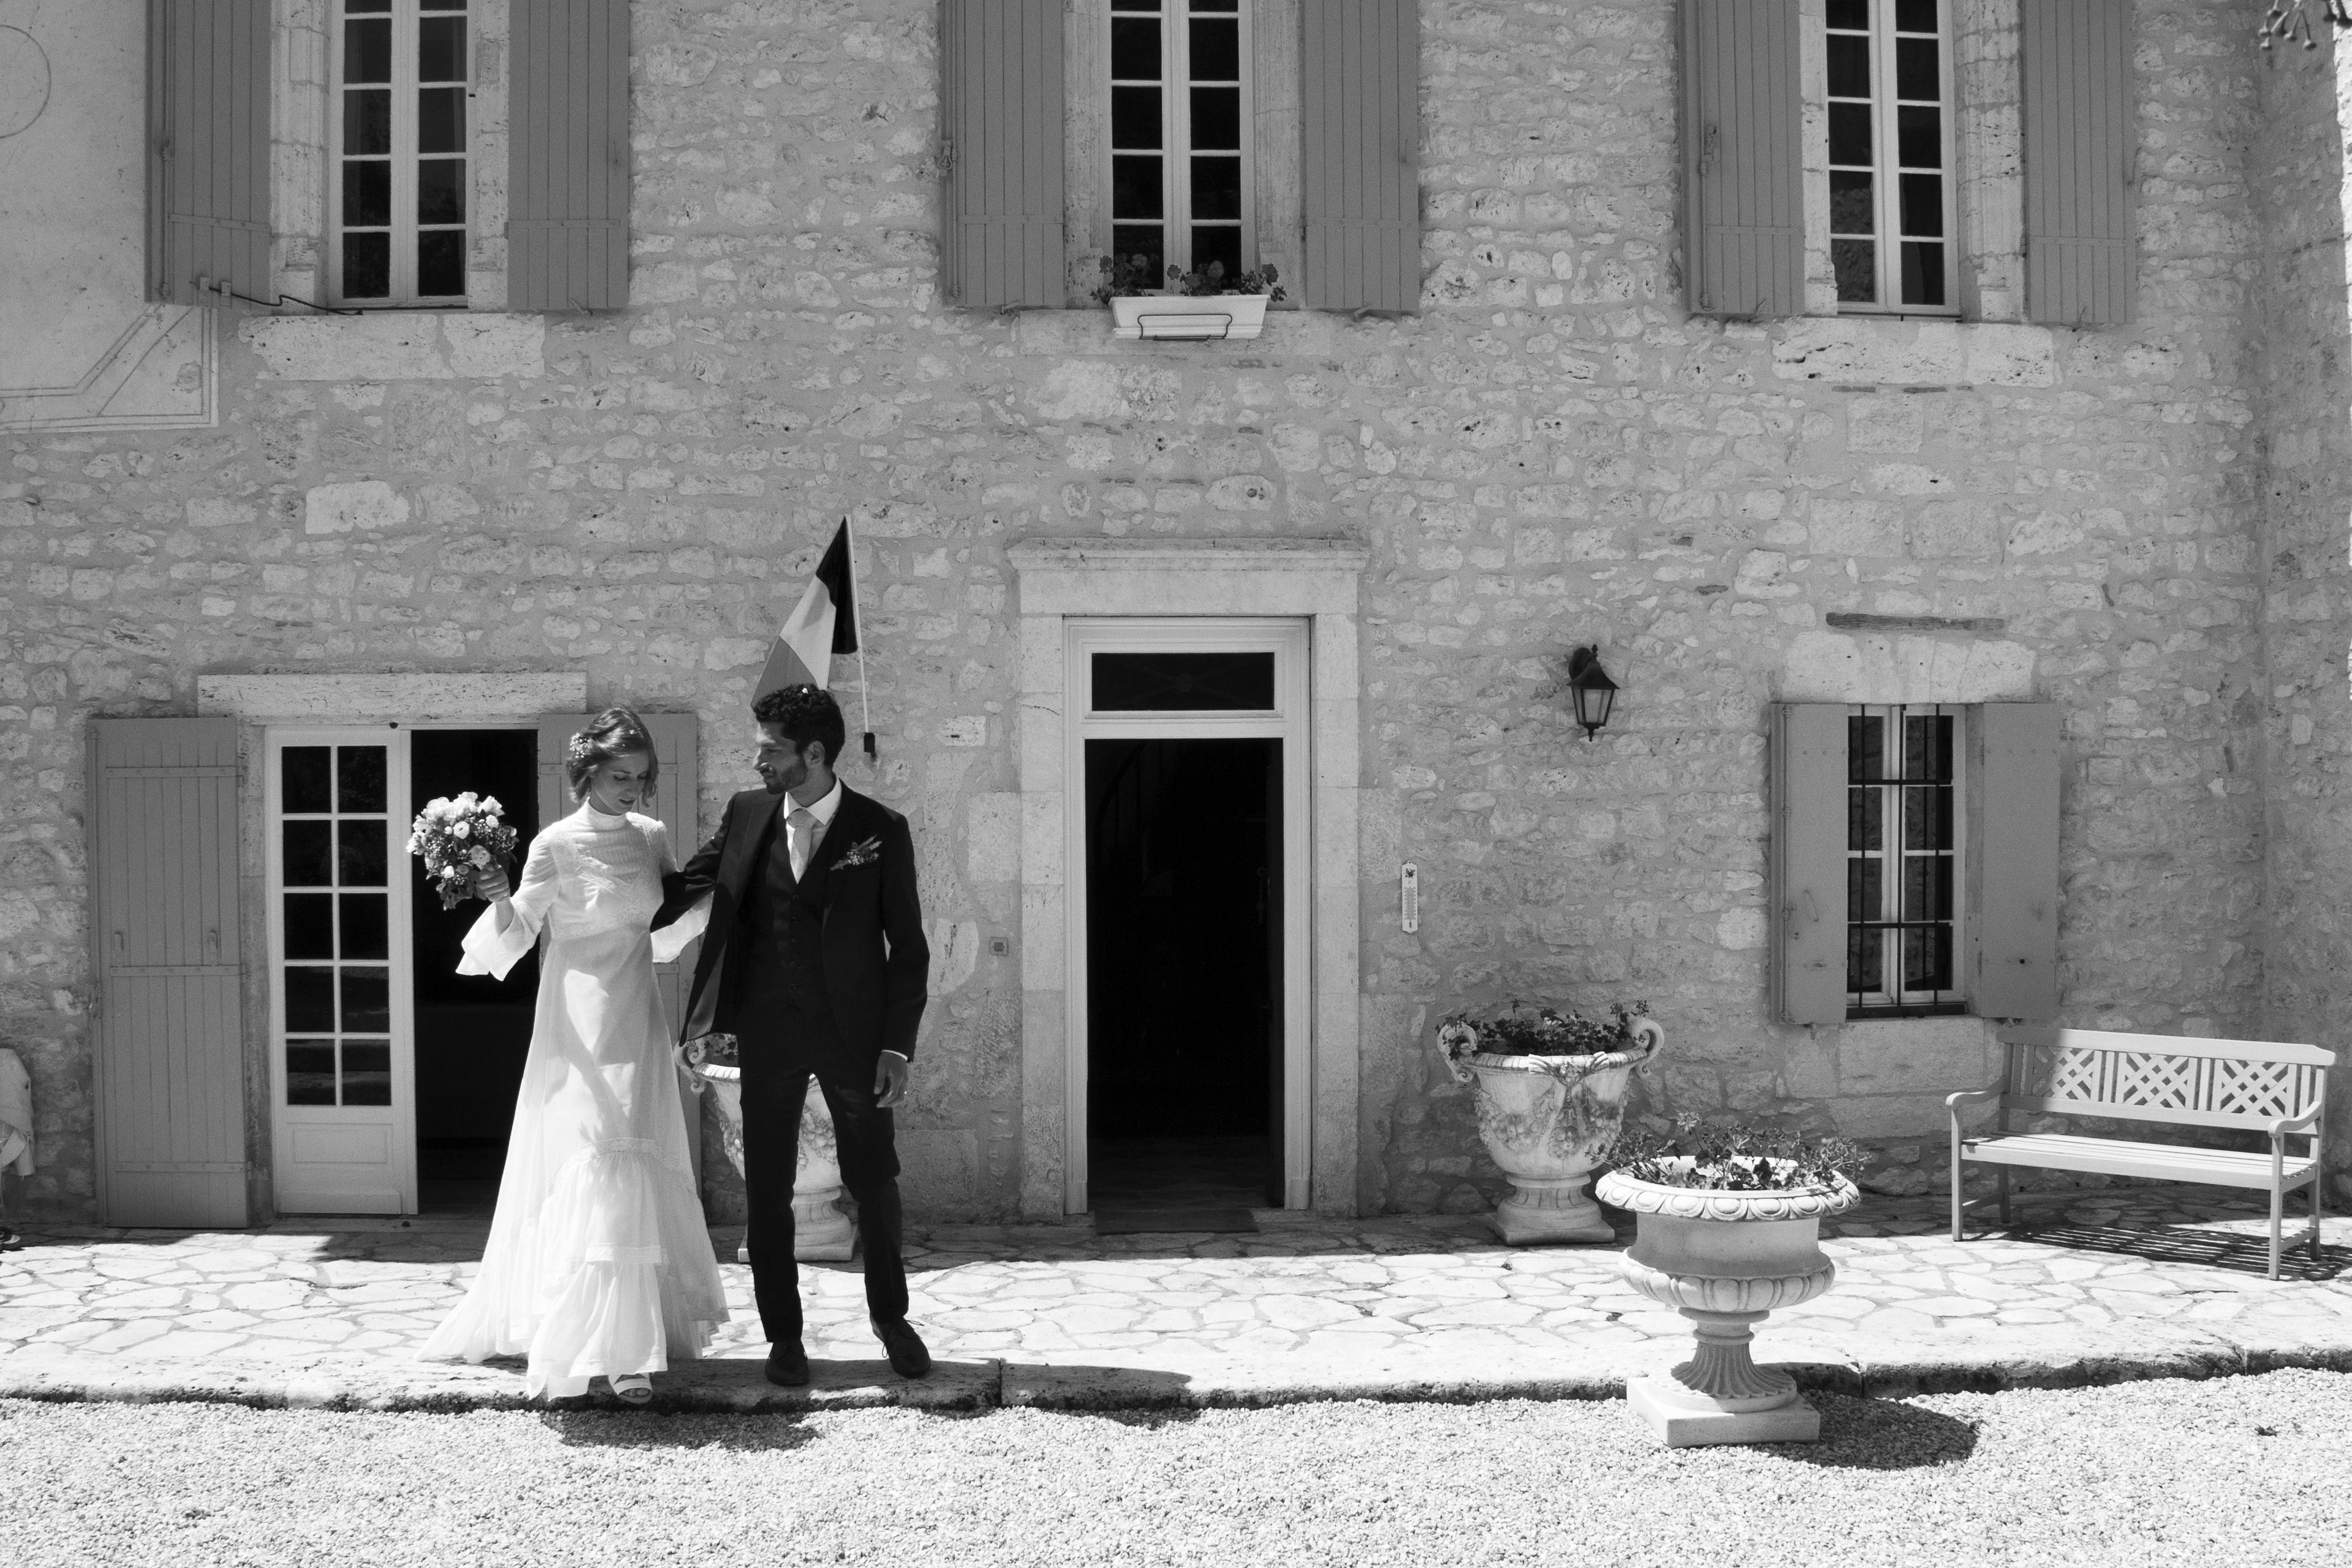 S wedding dress at a french wedding in may wedding dress